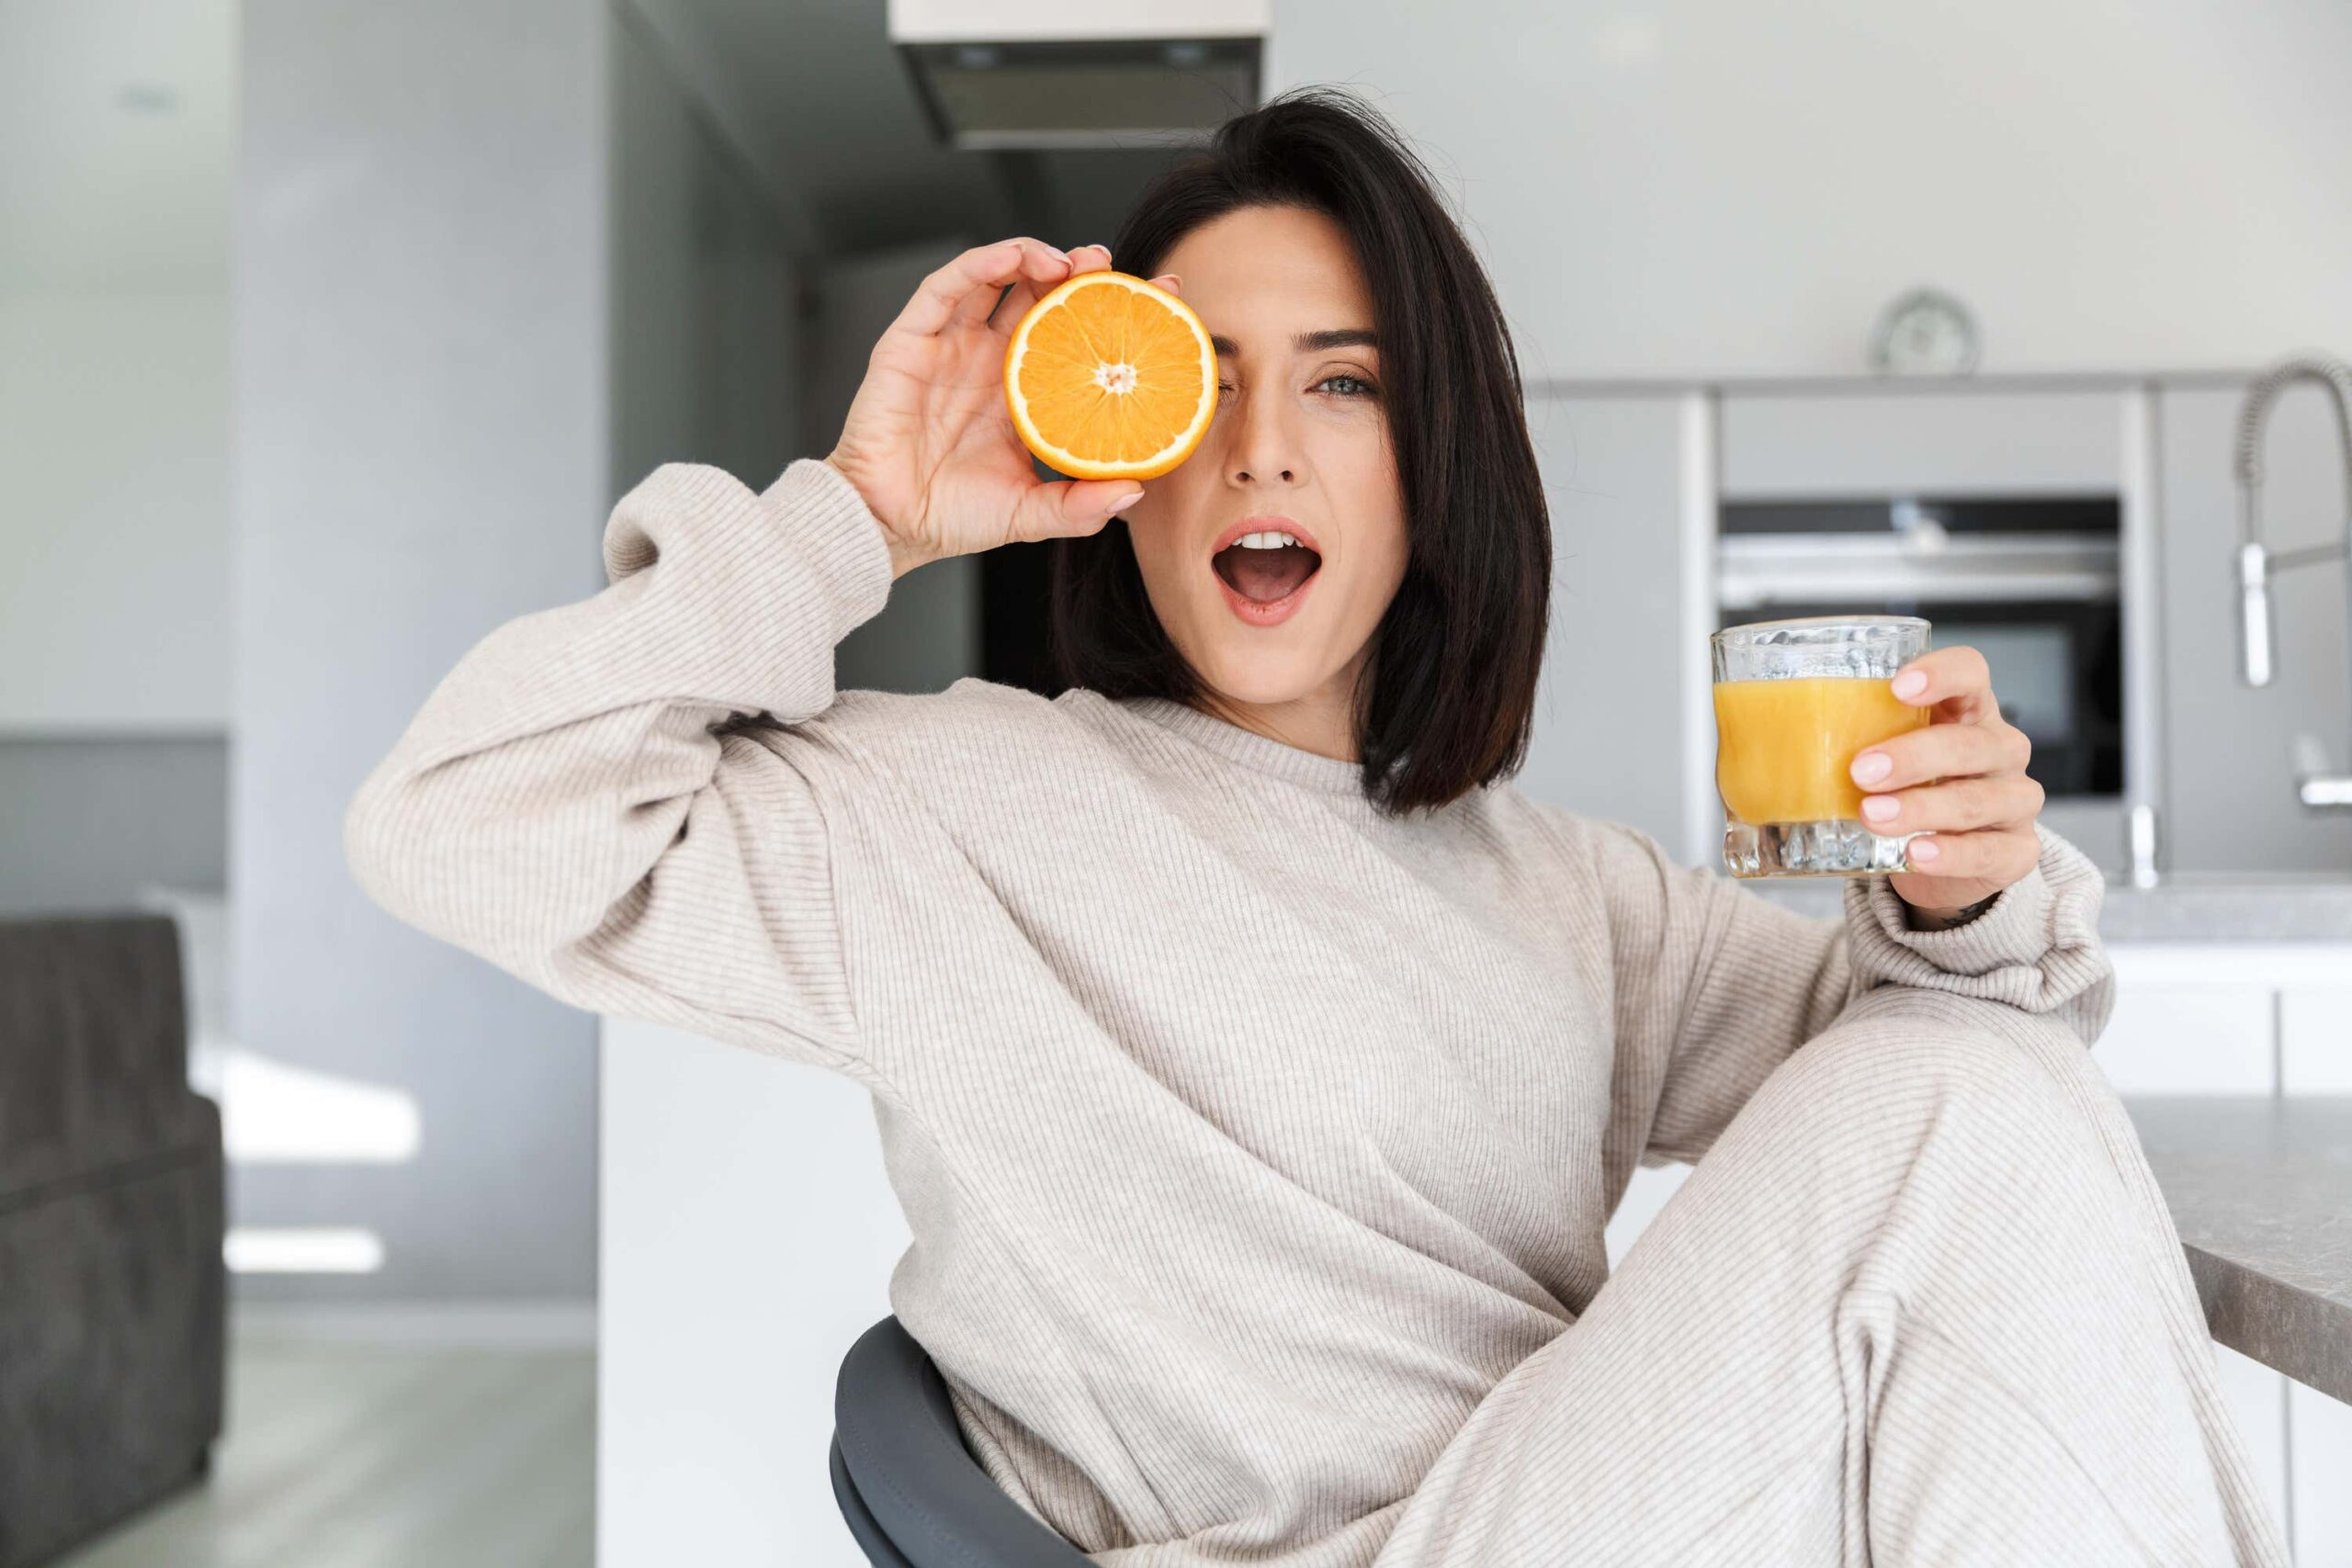 woman holds half an orange to her eye scaled